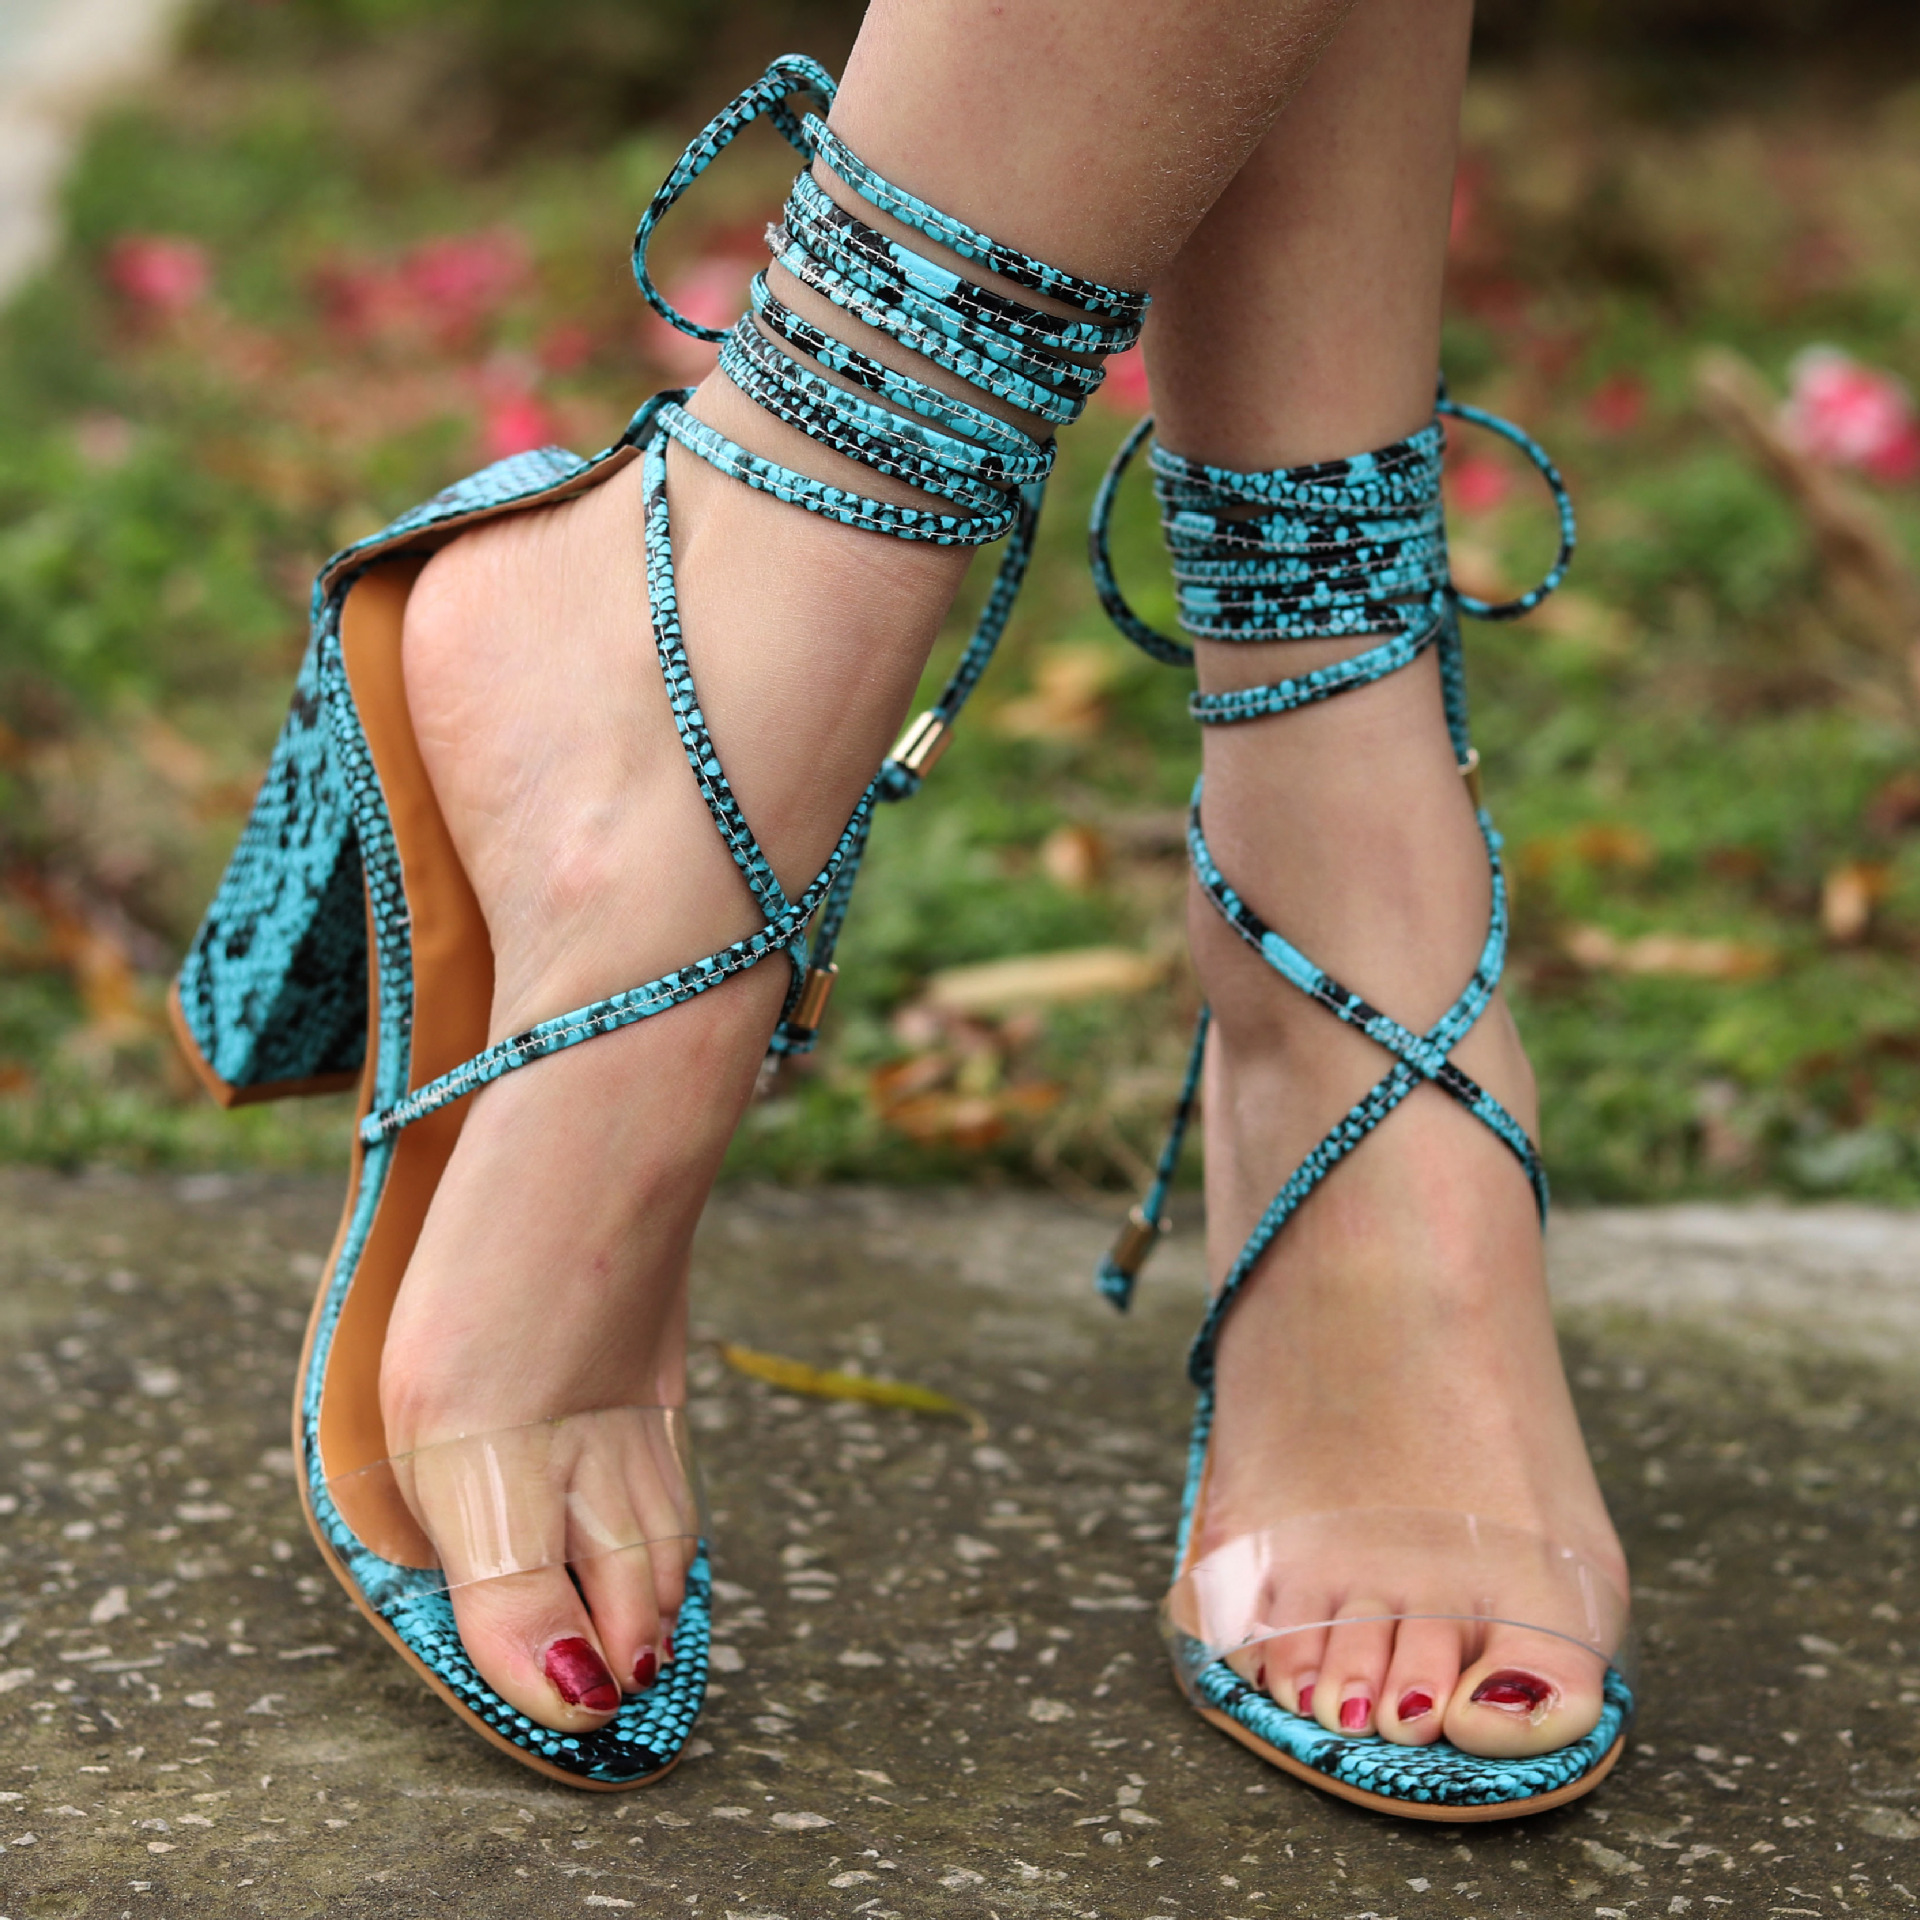 High-heeled straps with 2018 new large size European and American sandals womens shoes    strappy heels  clear heelsHigh-heeled straps with 2018 new large size European and American sandals womens shoes    strappy heels  clear heels